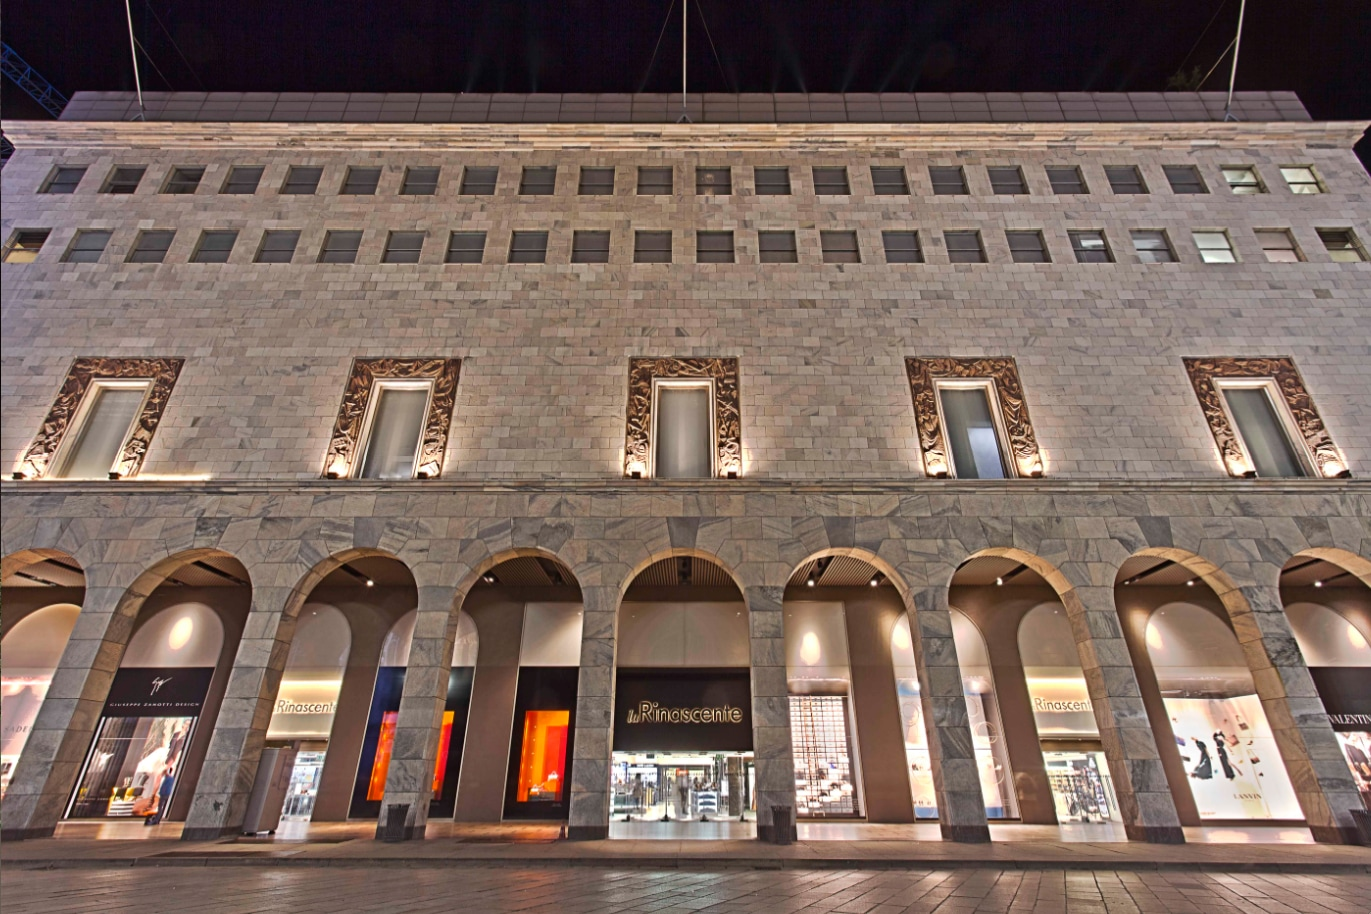 La Rinascente: The Best Department Store in the World